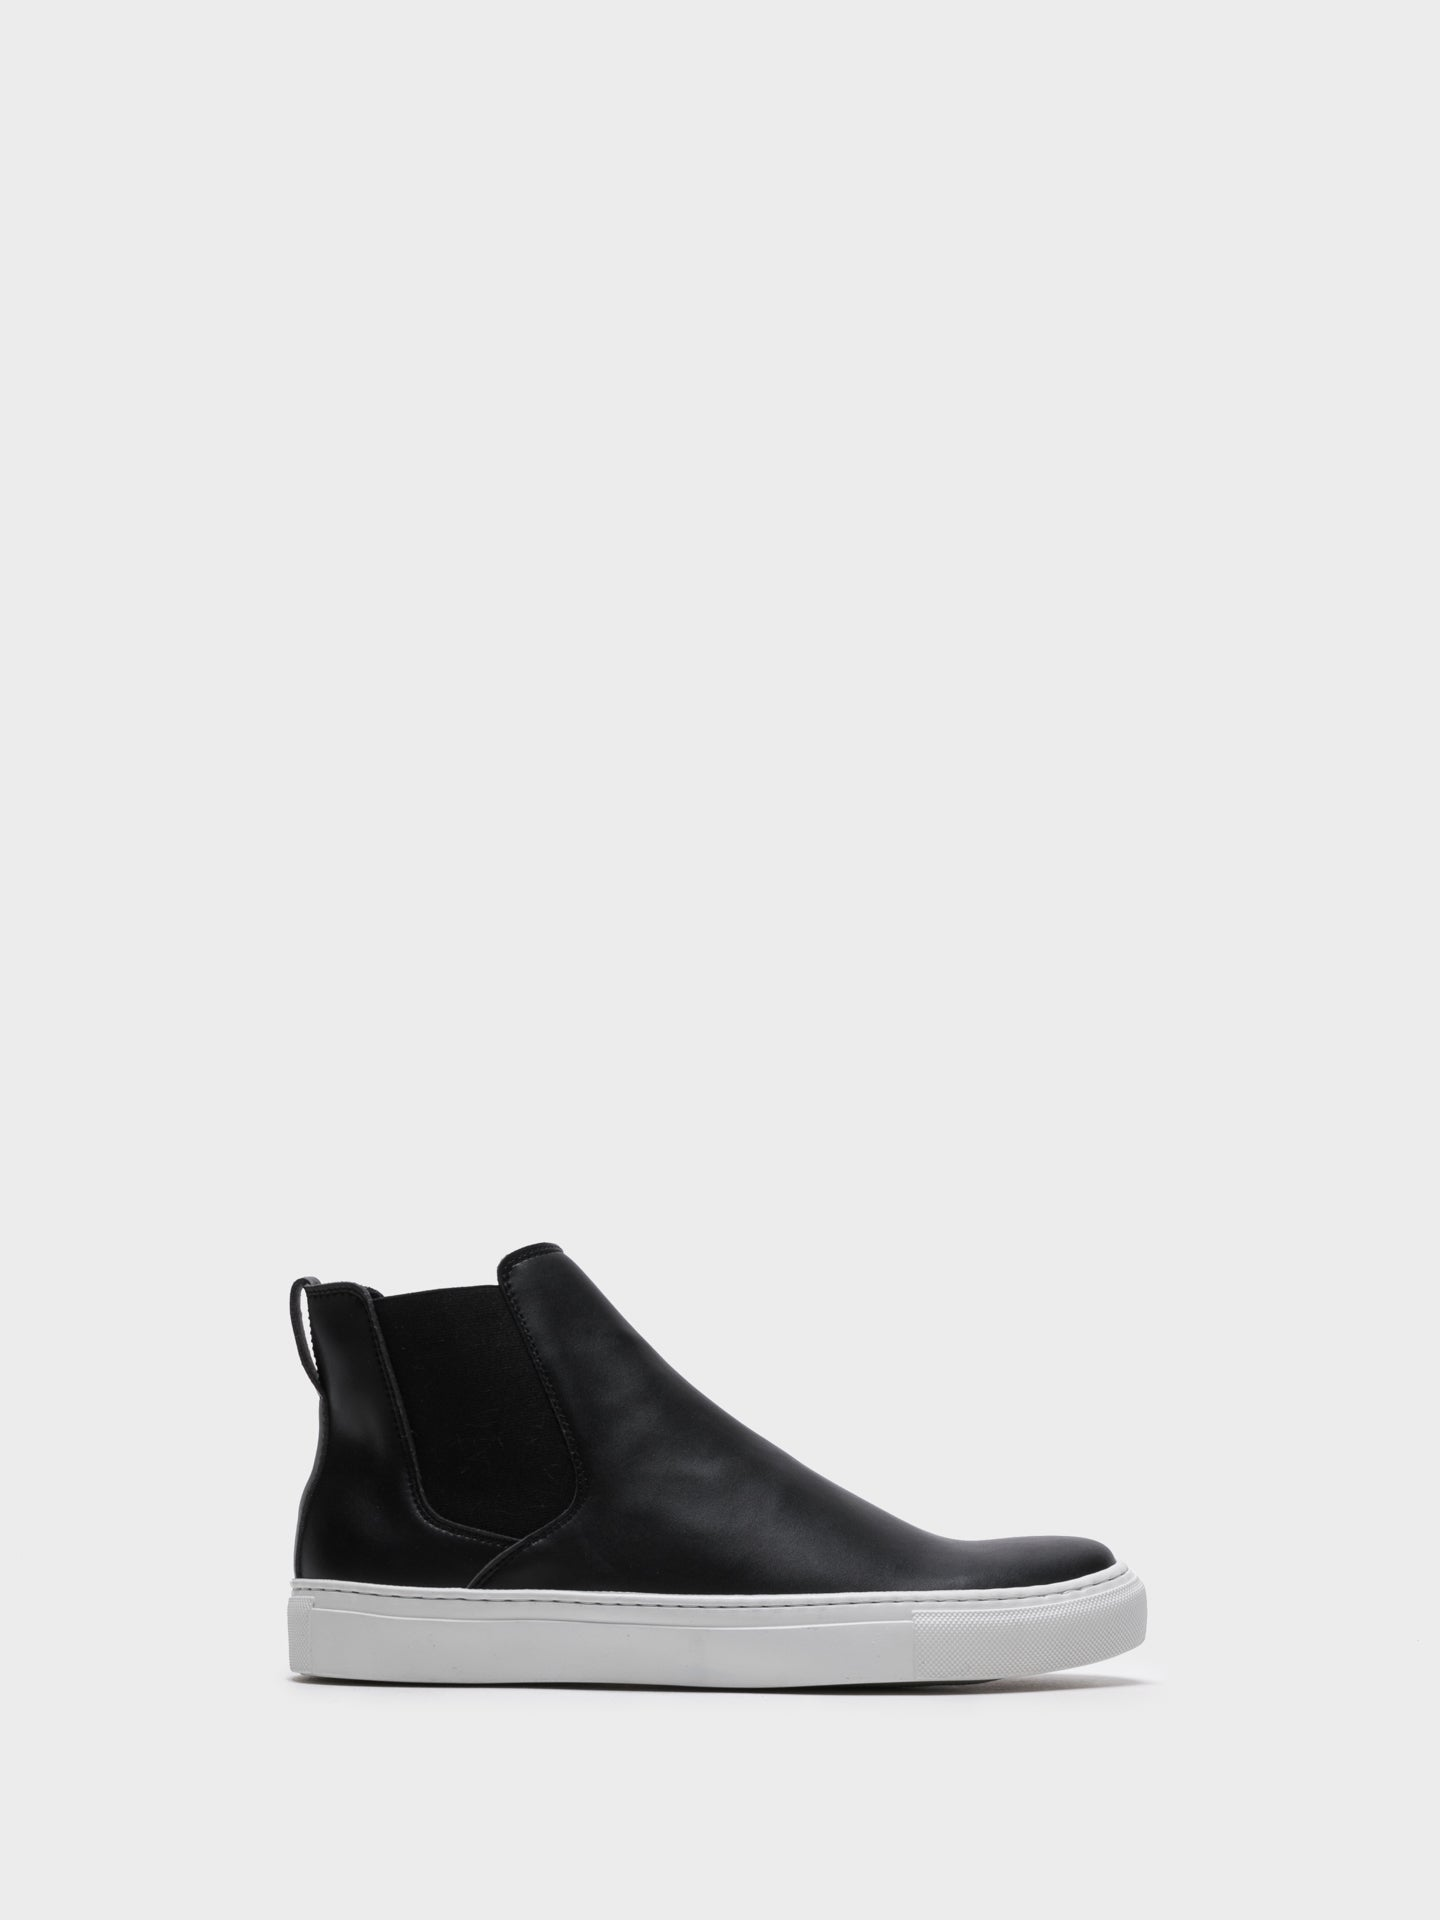 NAE Vegan Shoes Black Elasticated Trainers